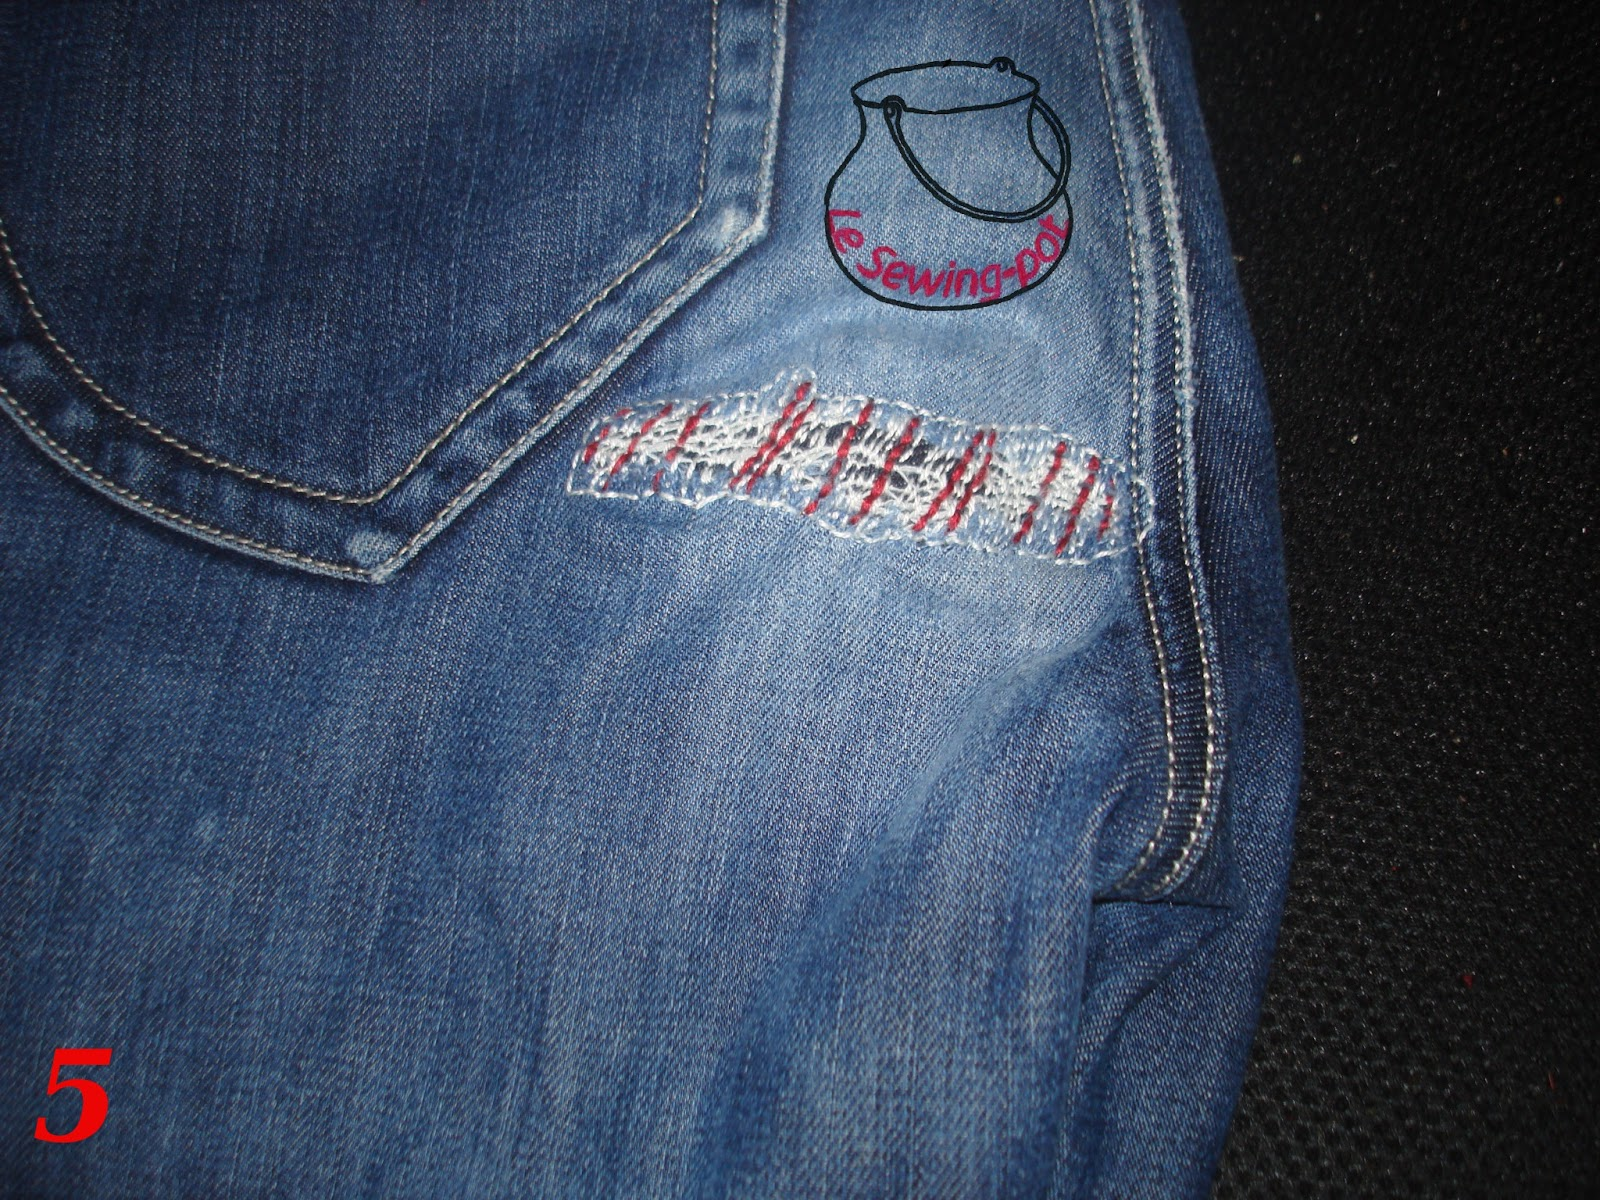 jeans repair embroidery diy